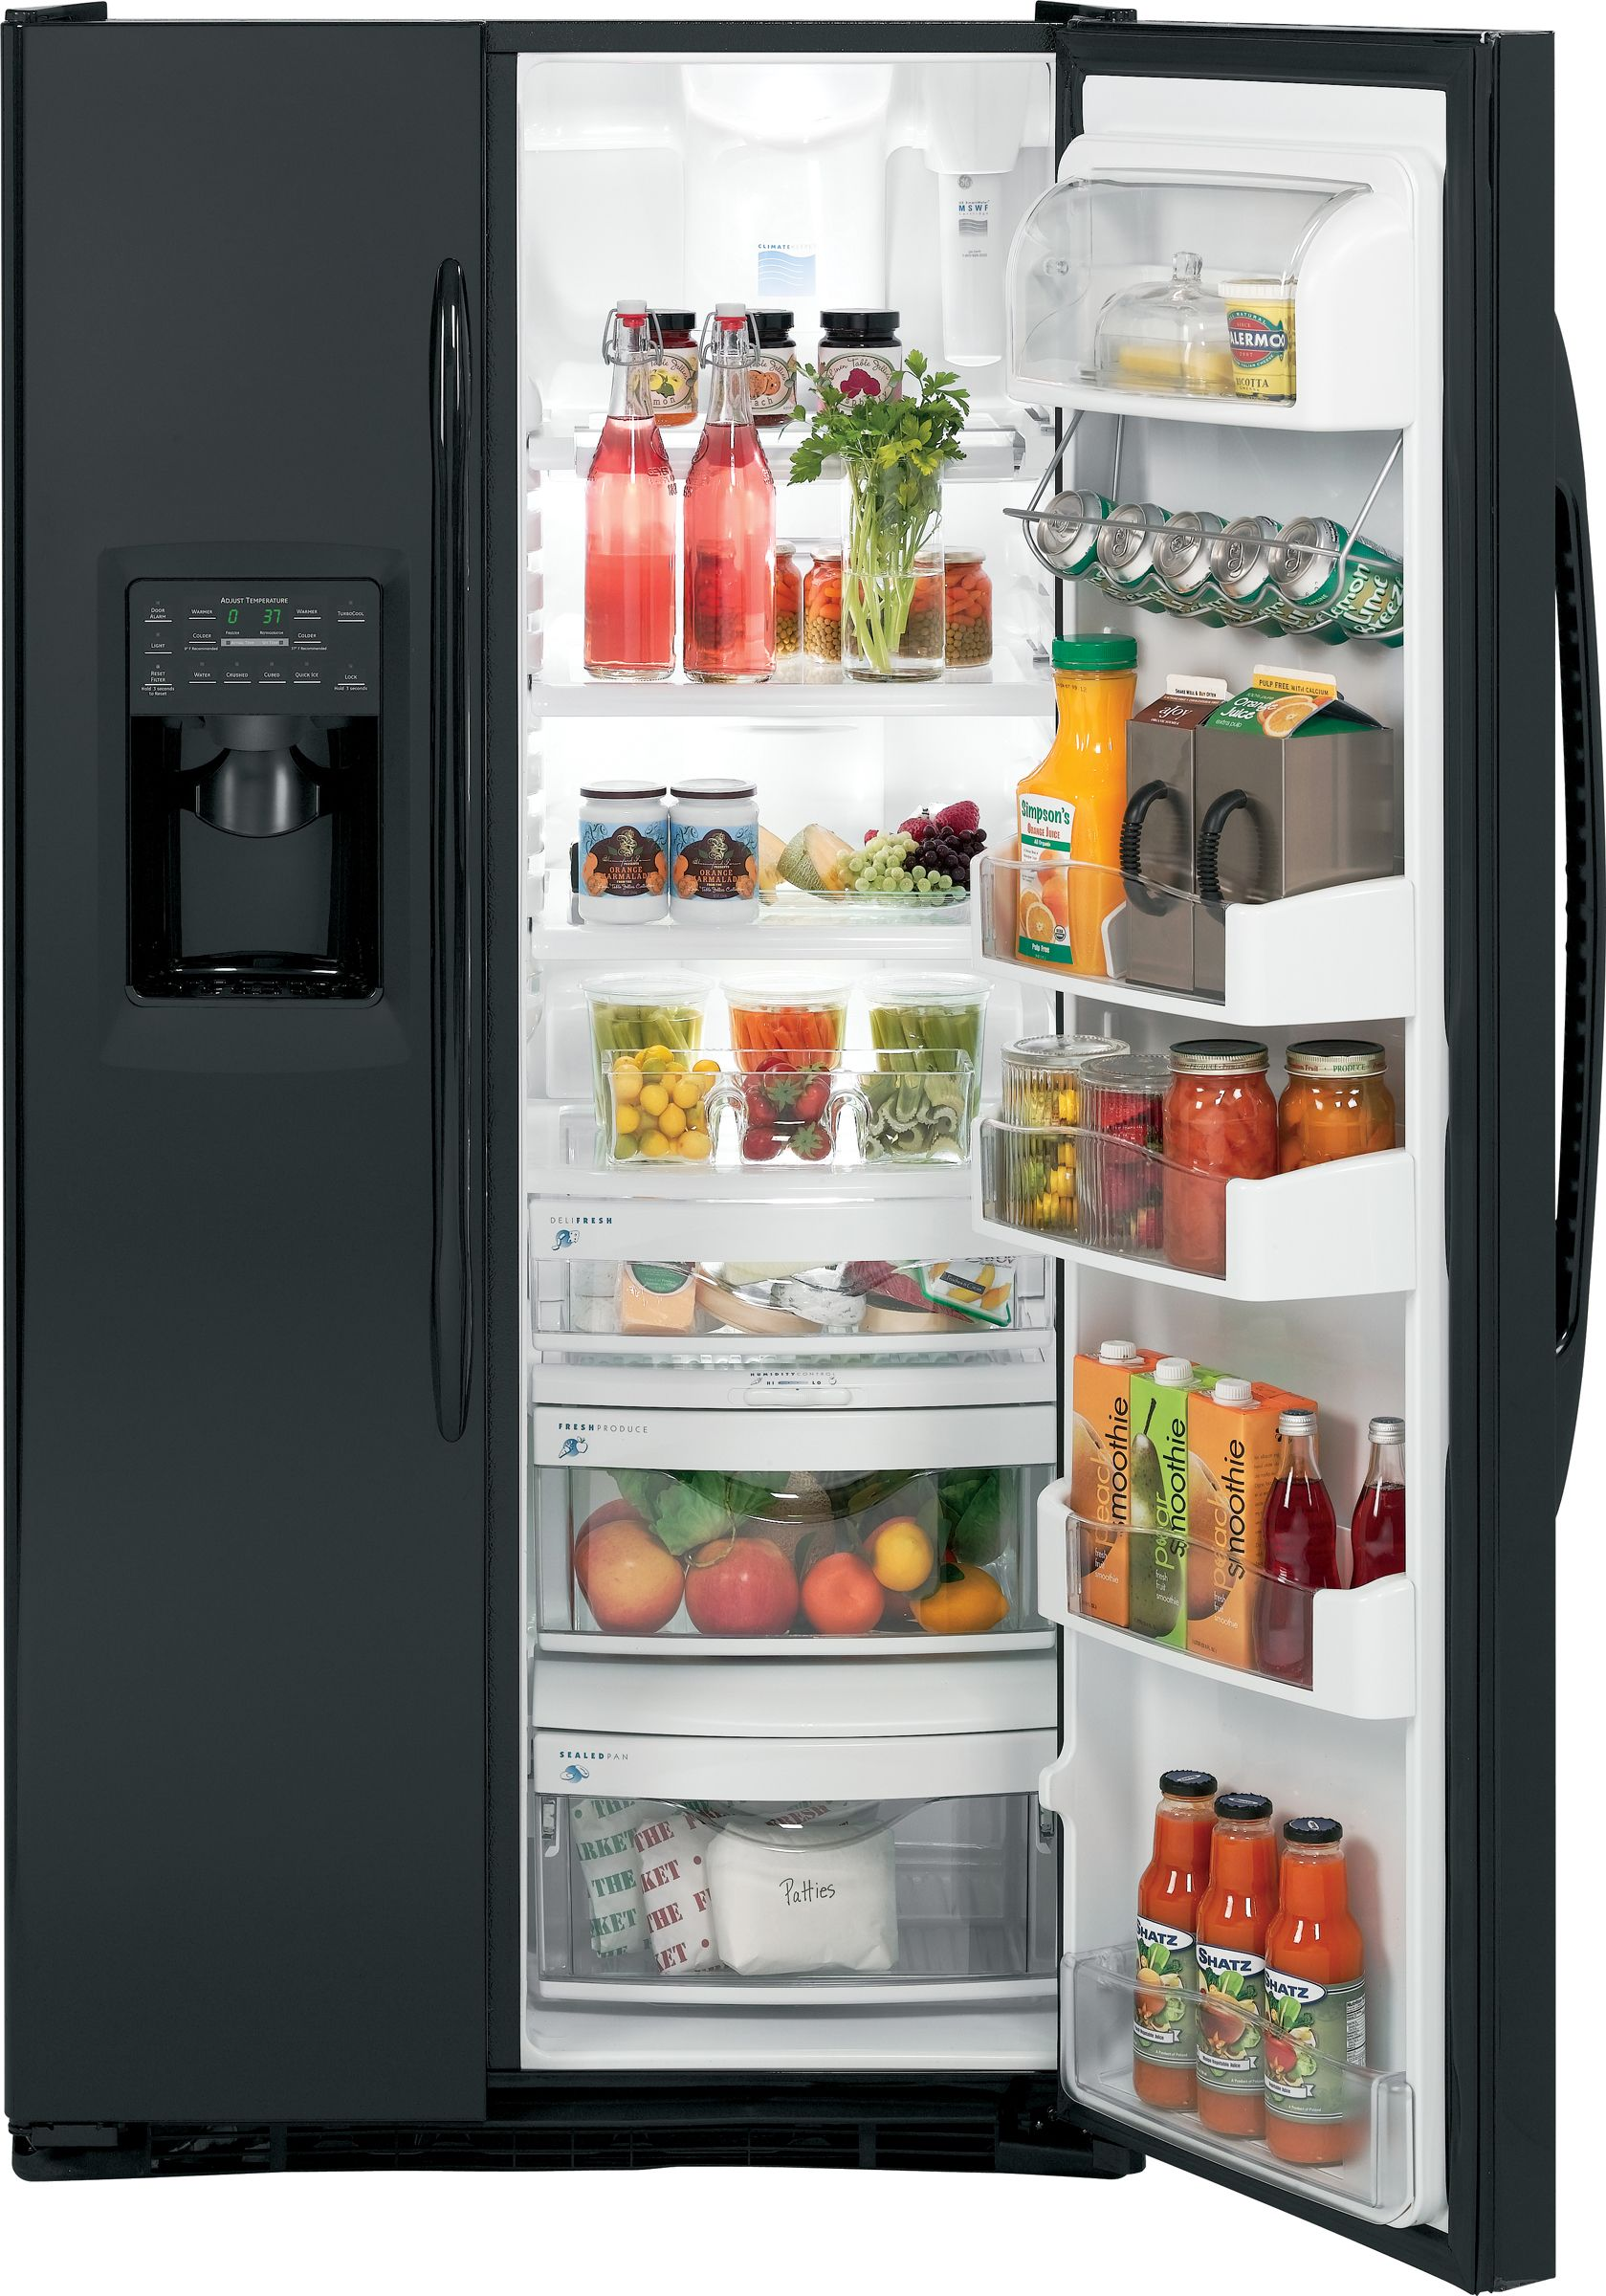 GE Profile Profile™ Series 24.6 cu. ft. Counter-Depth Side-by-Side Refrigerator